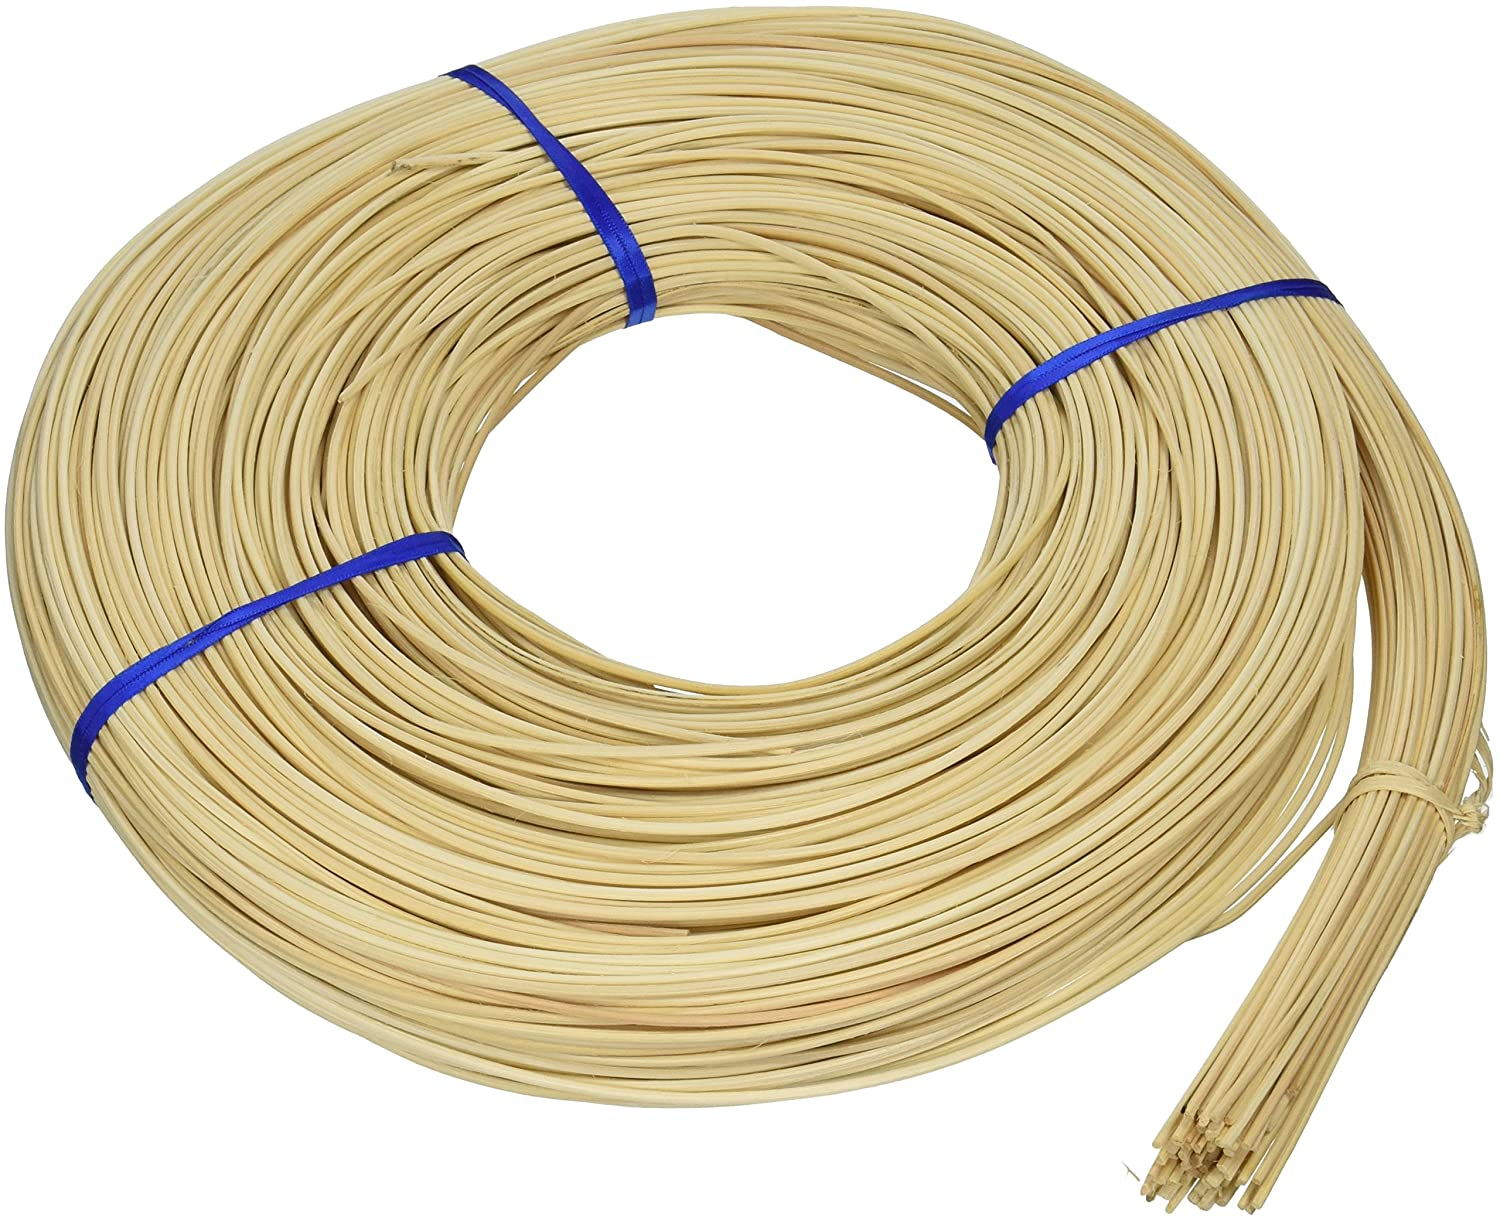 Commonwealth Basket Round Reed #3 2-1/4mm 1-Pound Coil, Approximately 750-Feet 3RR